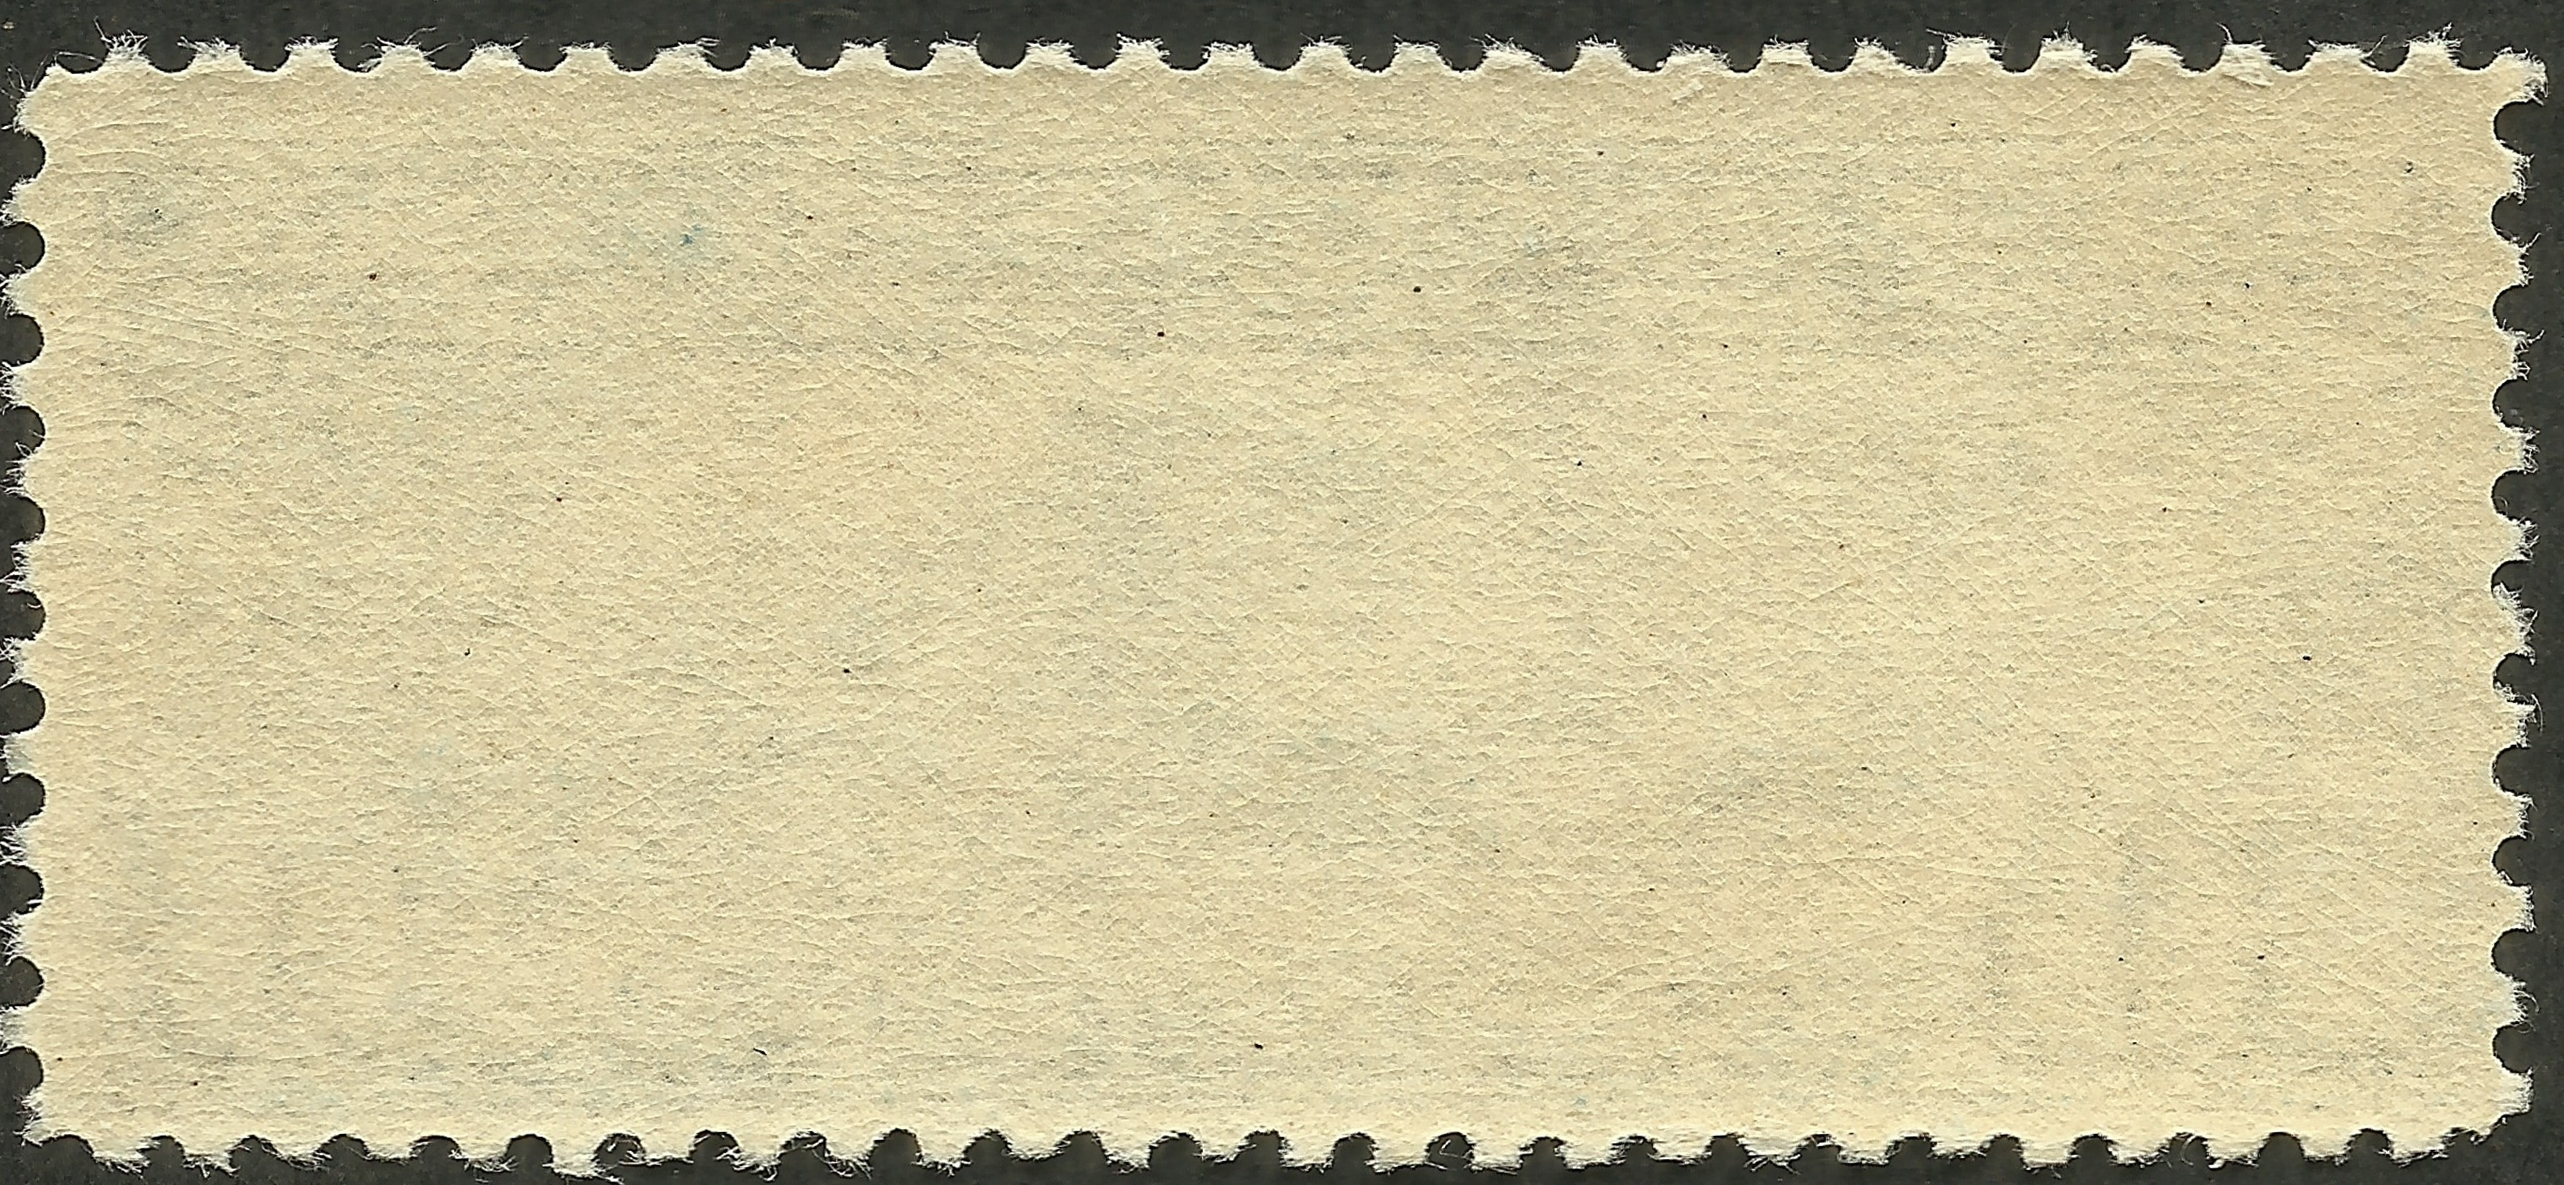 Stamp gum - on the back of a U.S. mint, never hinged stamp (#C10, 1927)